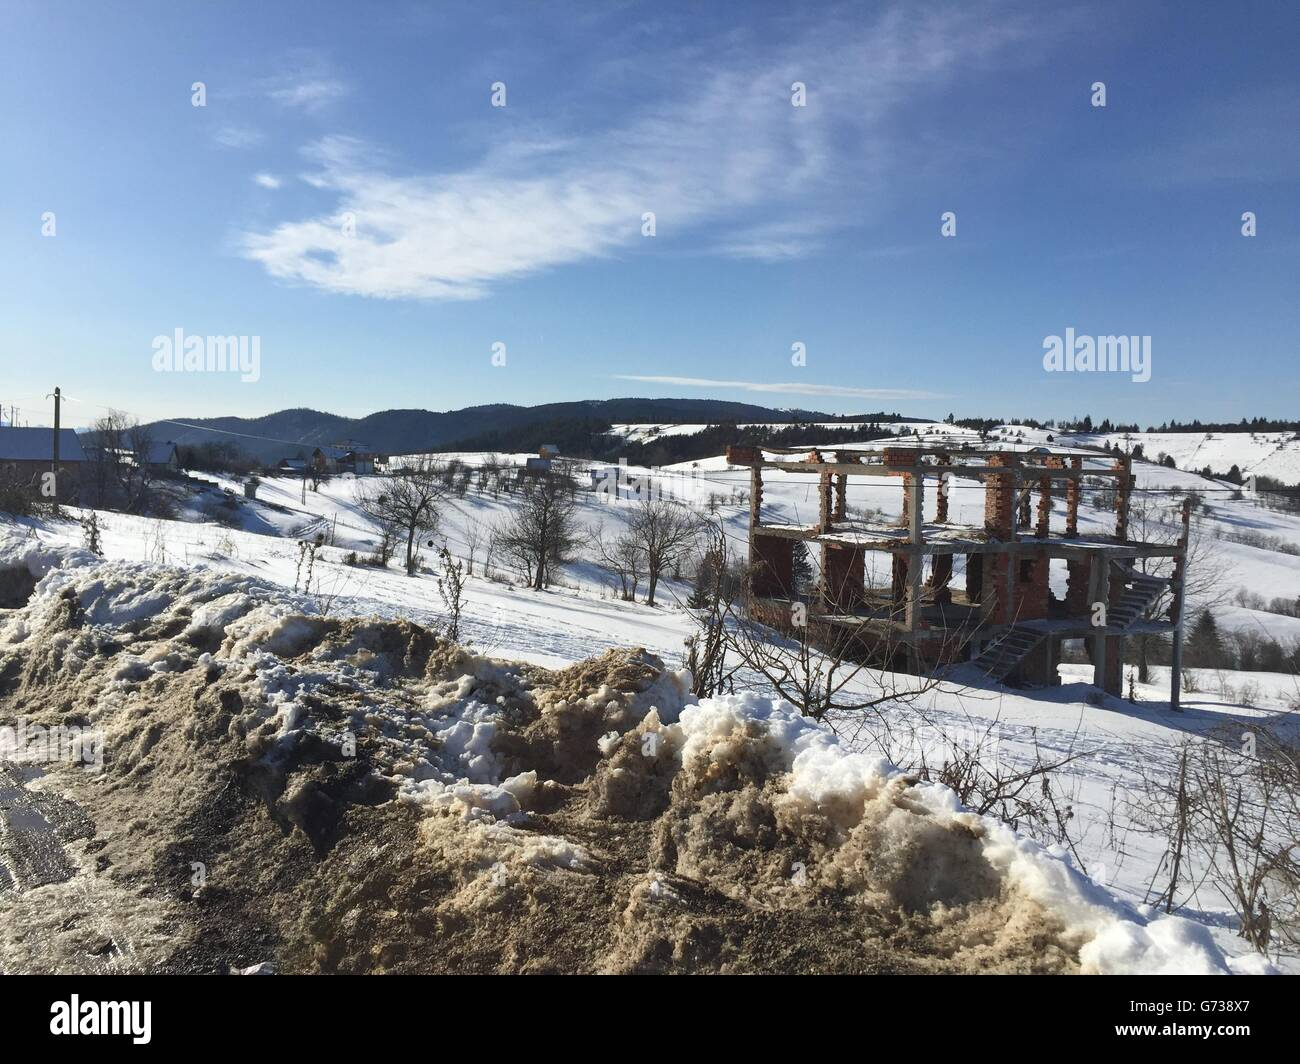 War ruins in Bosnia during Winter - Stock Image